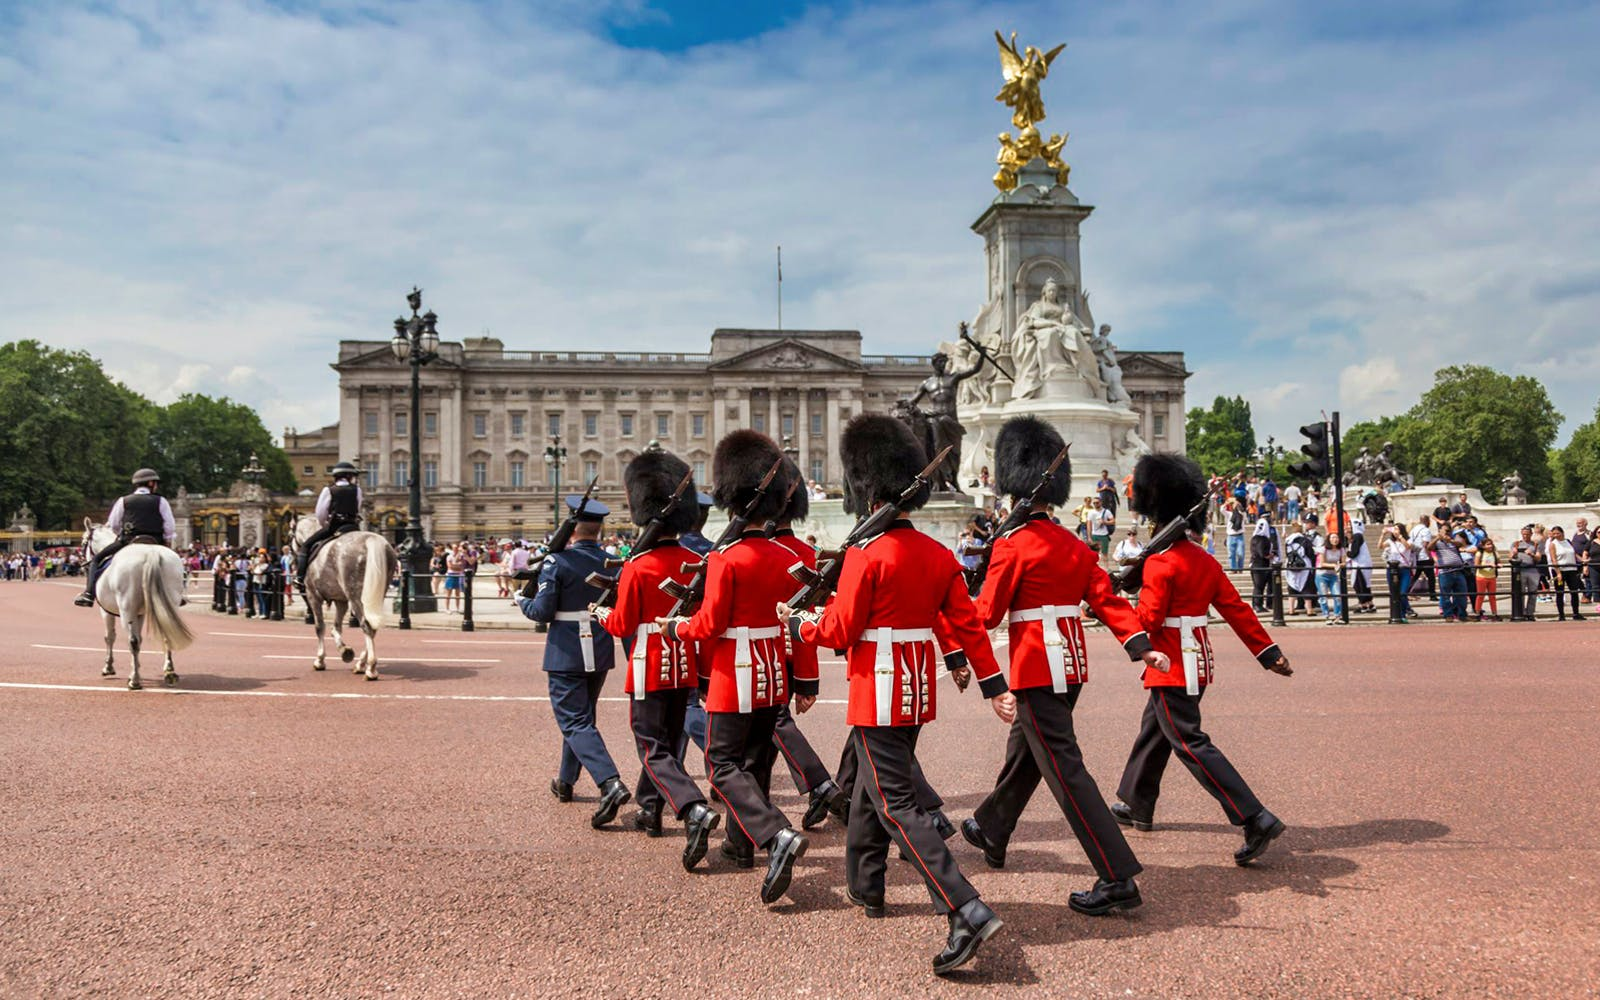 buckingham palace tickets with 24 hrs hop on hop off bus tour-3